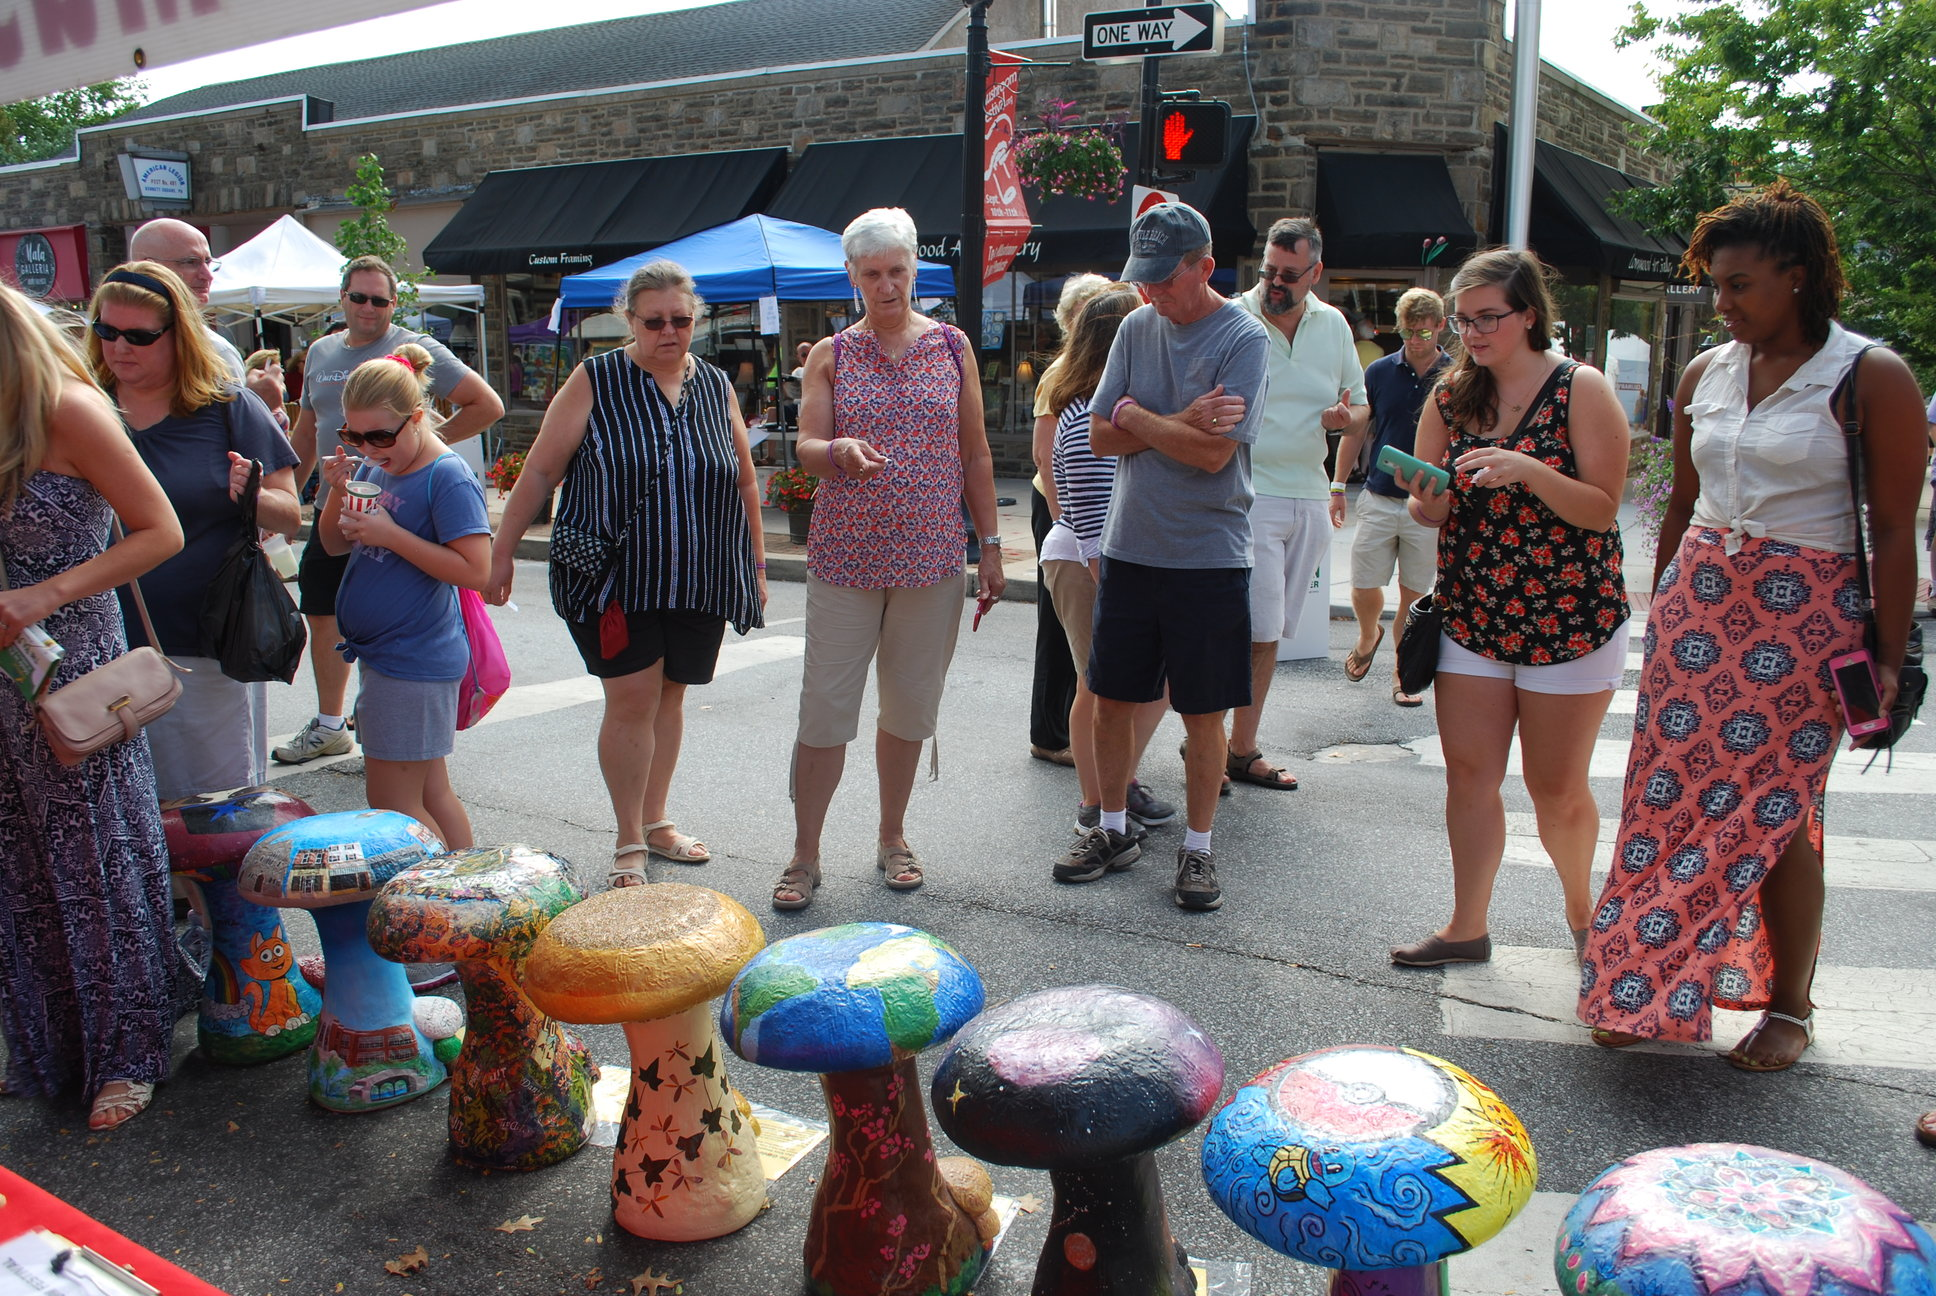 The Kennett Square Mushroom Festival Sept. 9 to 10) features arts and crafts. Last year, local artists created garden stools in the shape of mushrooms.